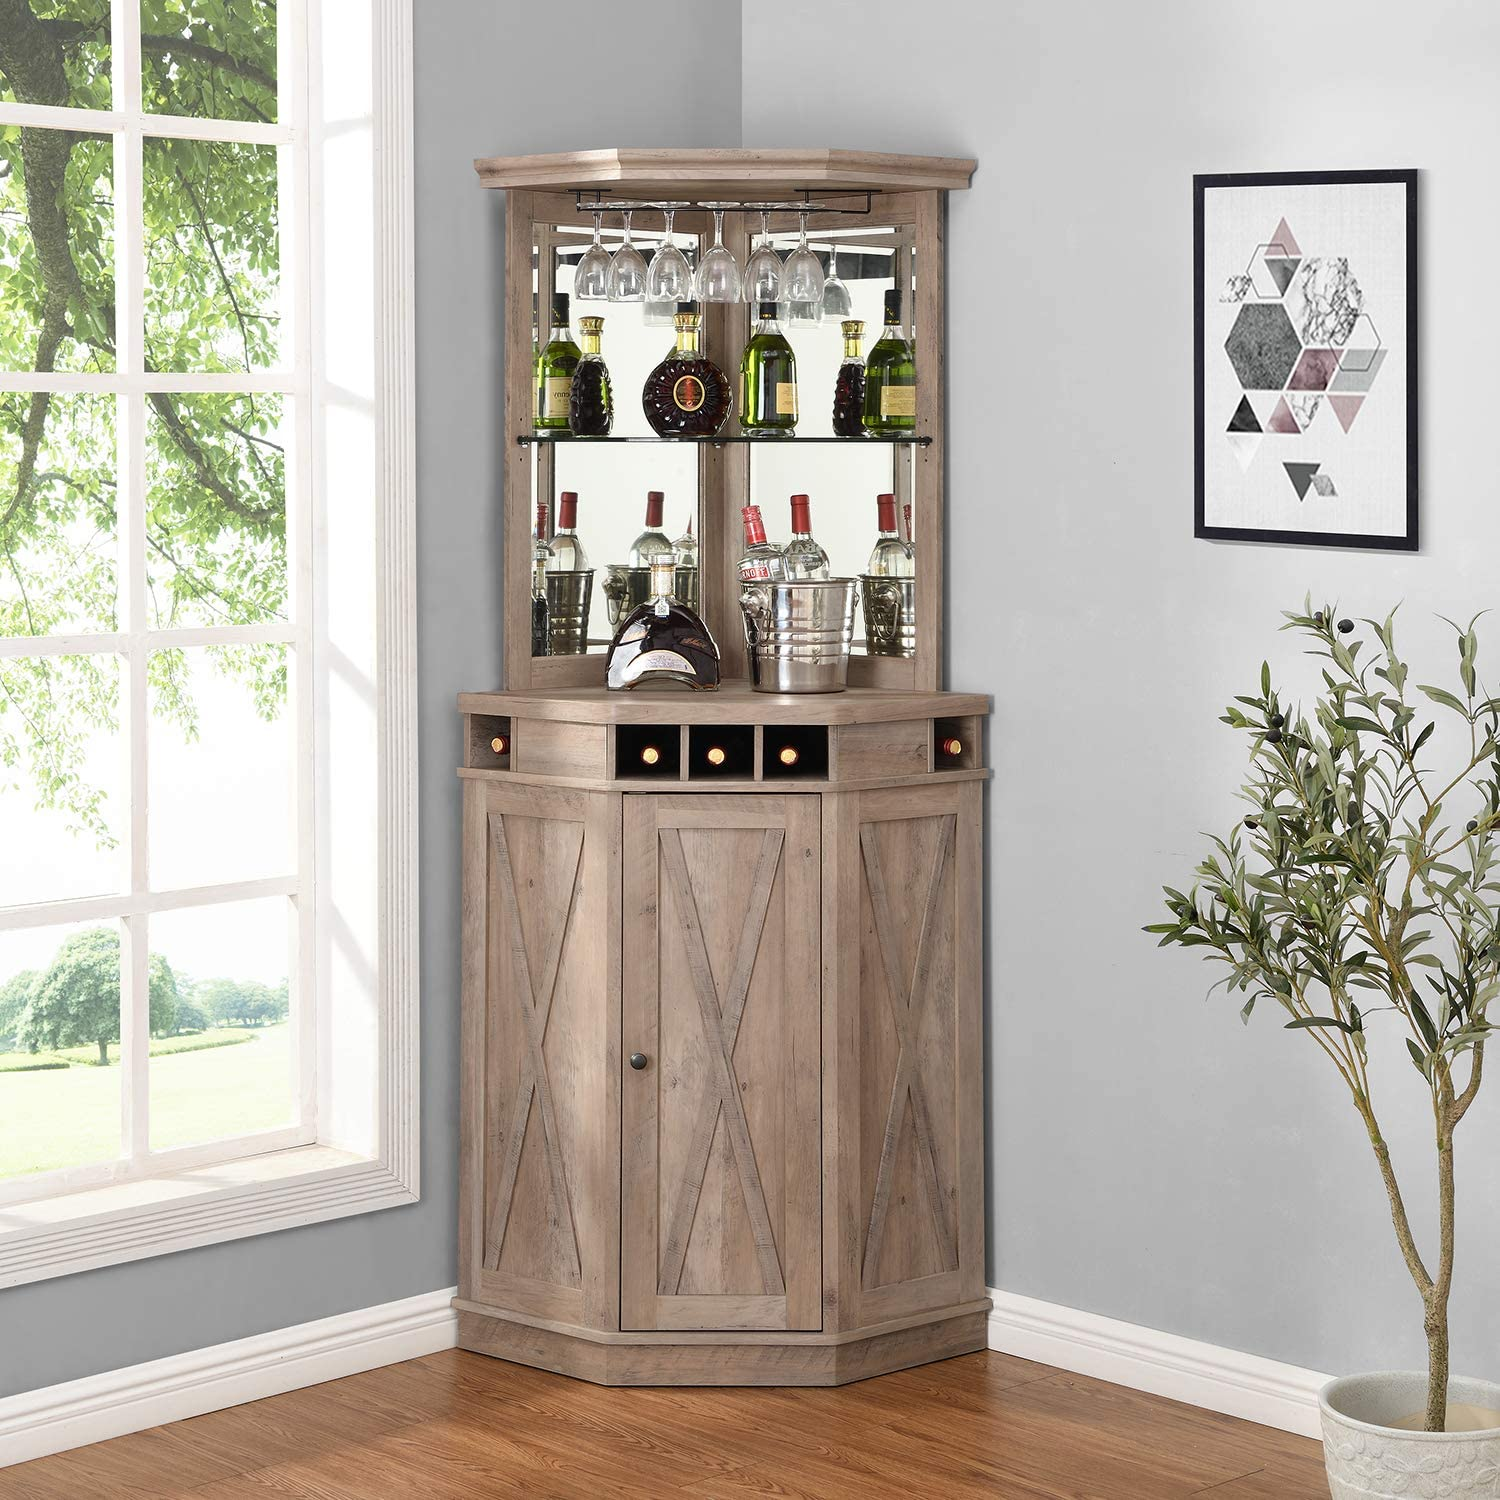 Corner Bar Unit with Built-in Wine Rack and Lower Cabinet (Stone Grey)